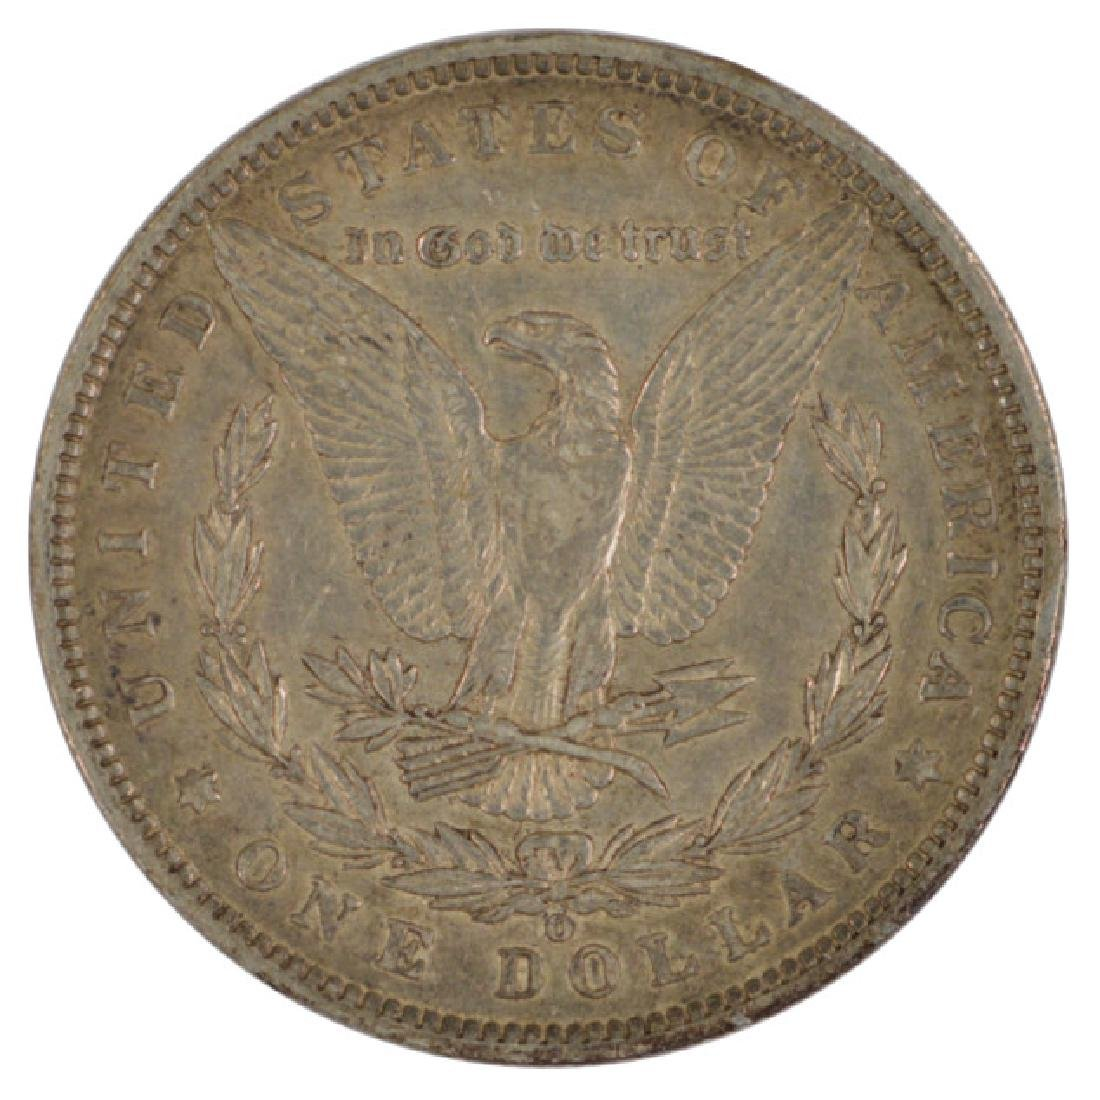 1886-O $1 Morgan Silver Dollar Coin - 2